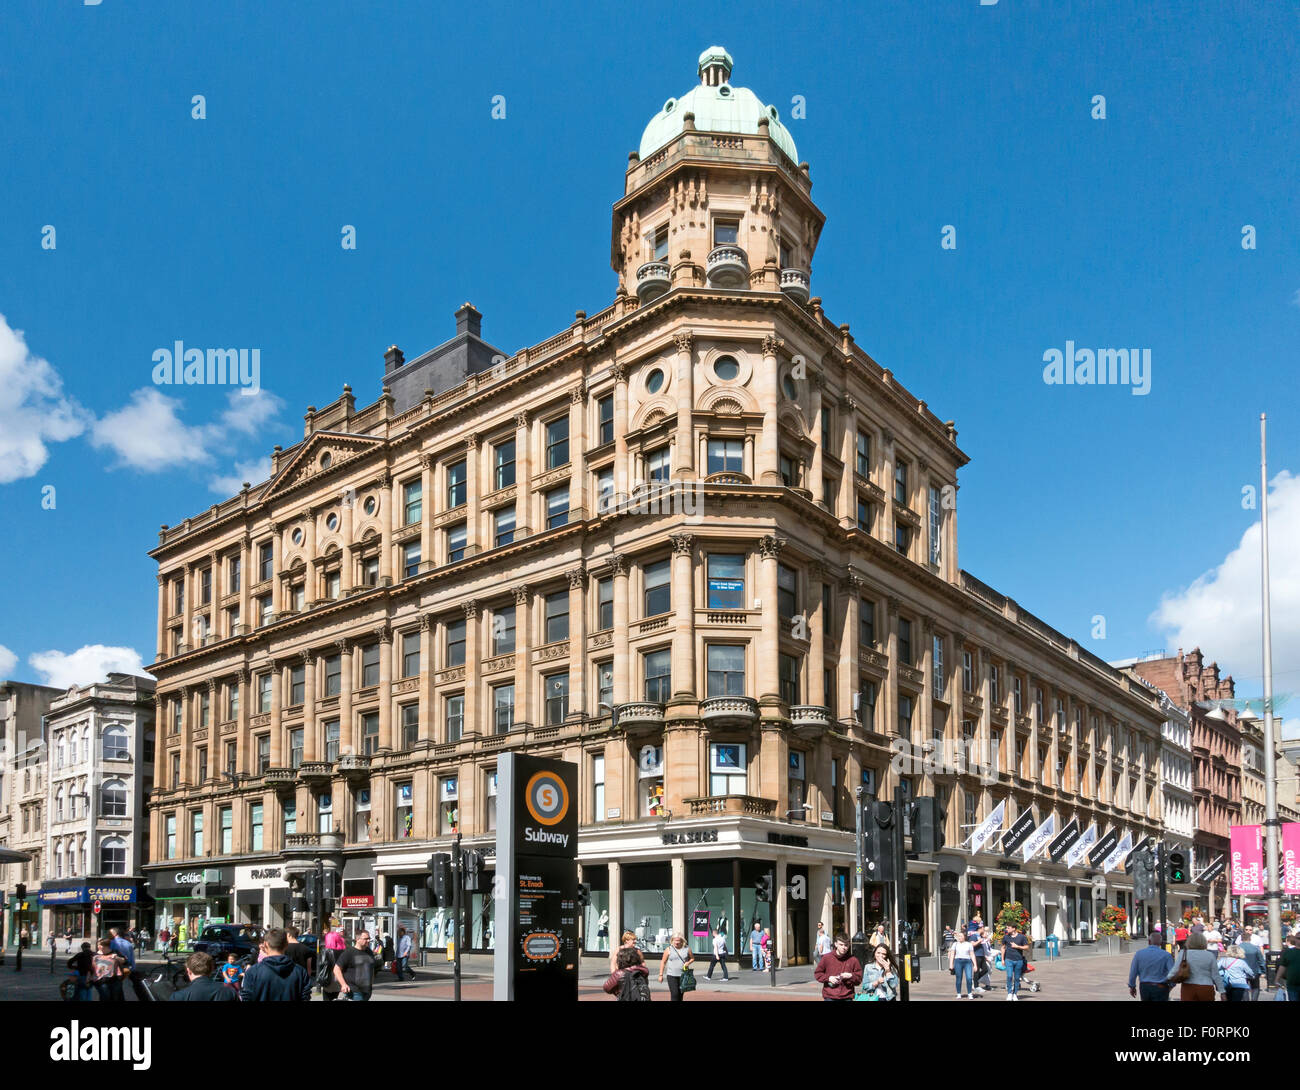 House of Fraser store on the corner of Argyle Street and Buchanan Street in Glasgow Scotland - Stock Image